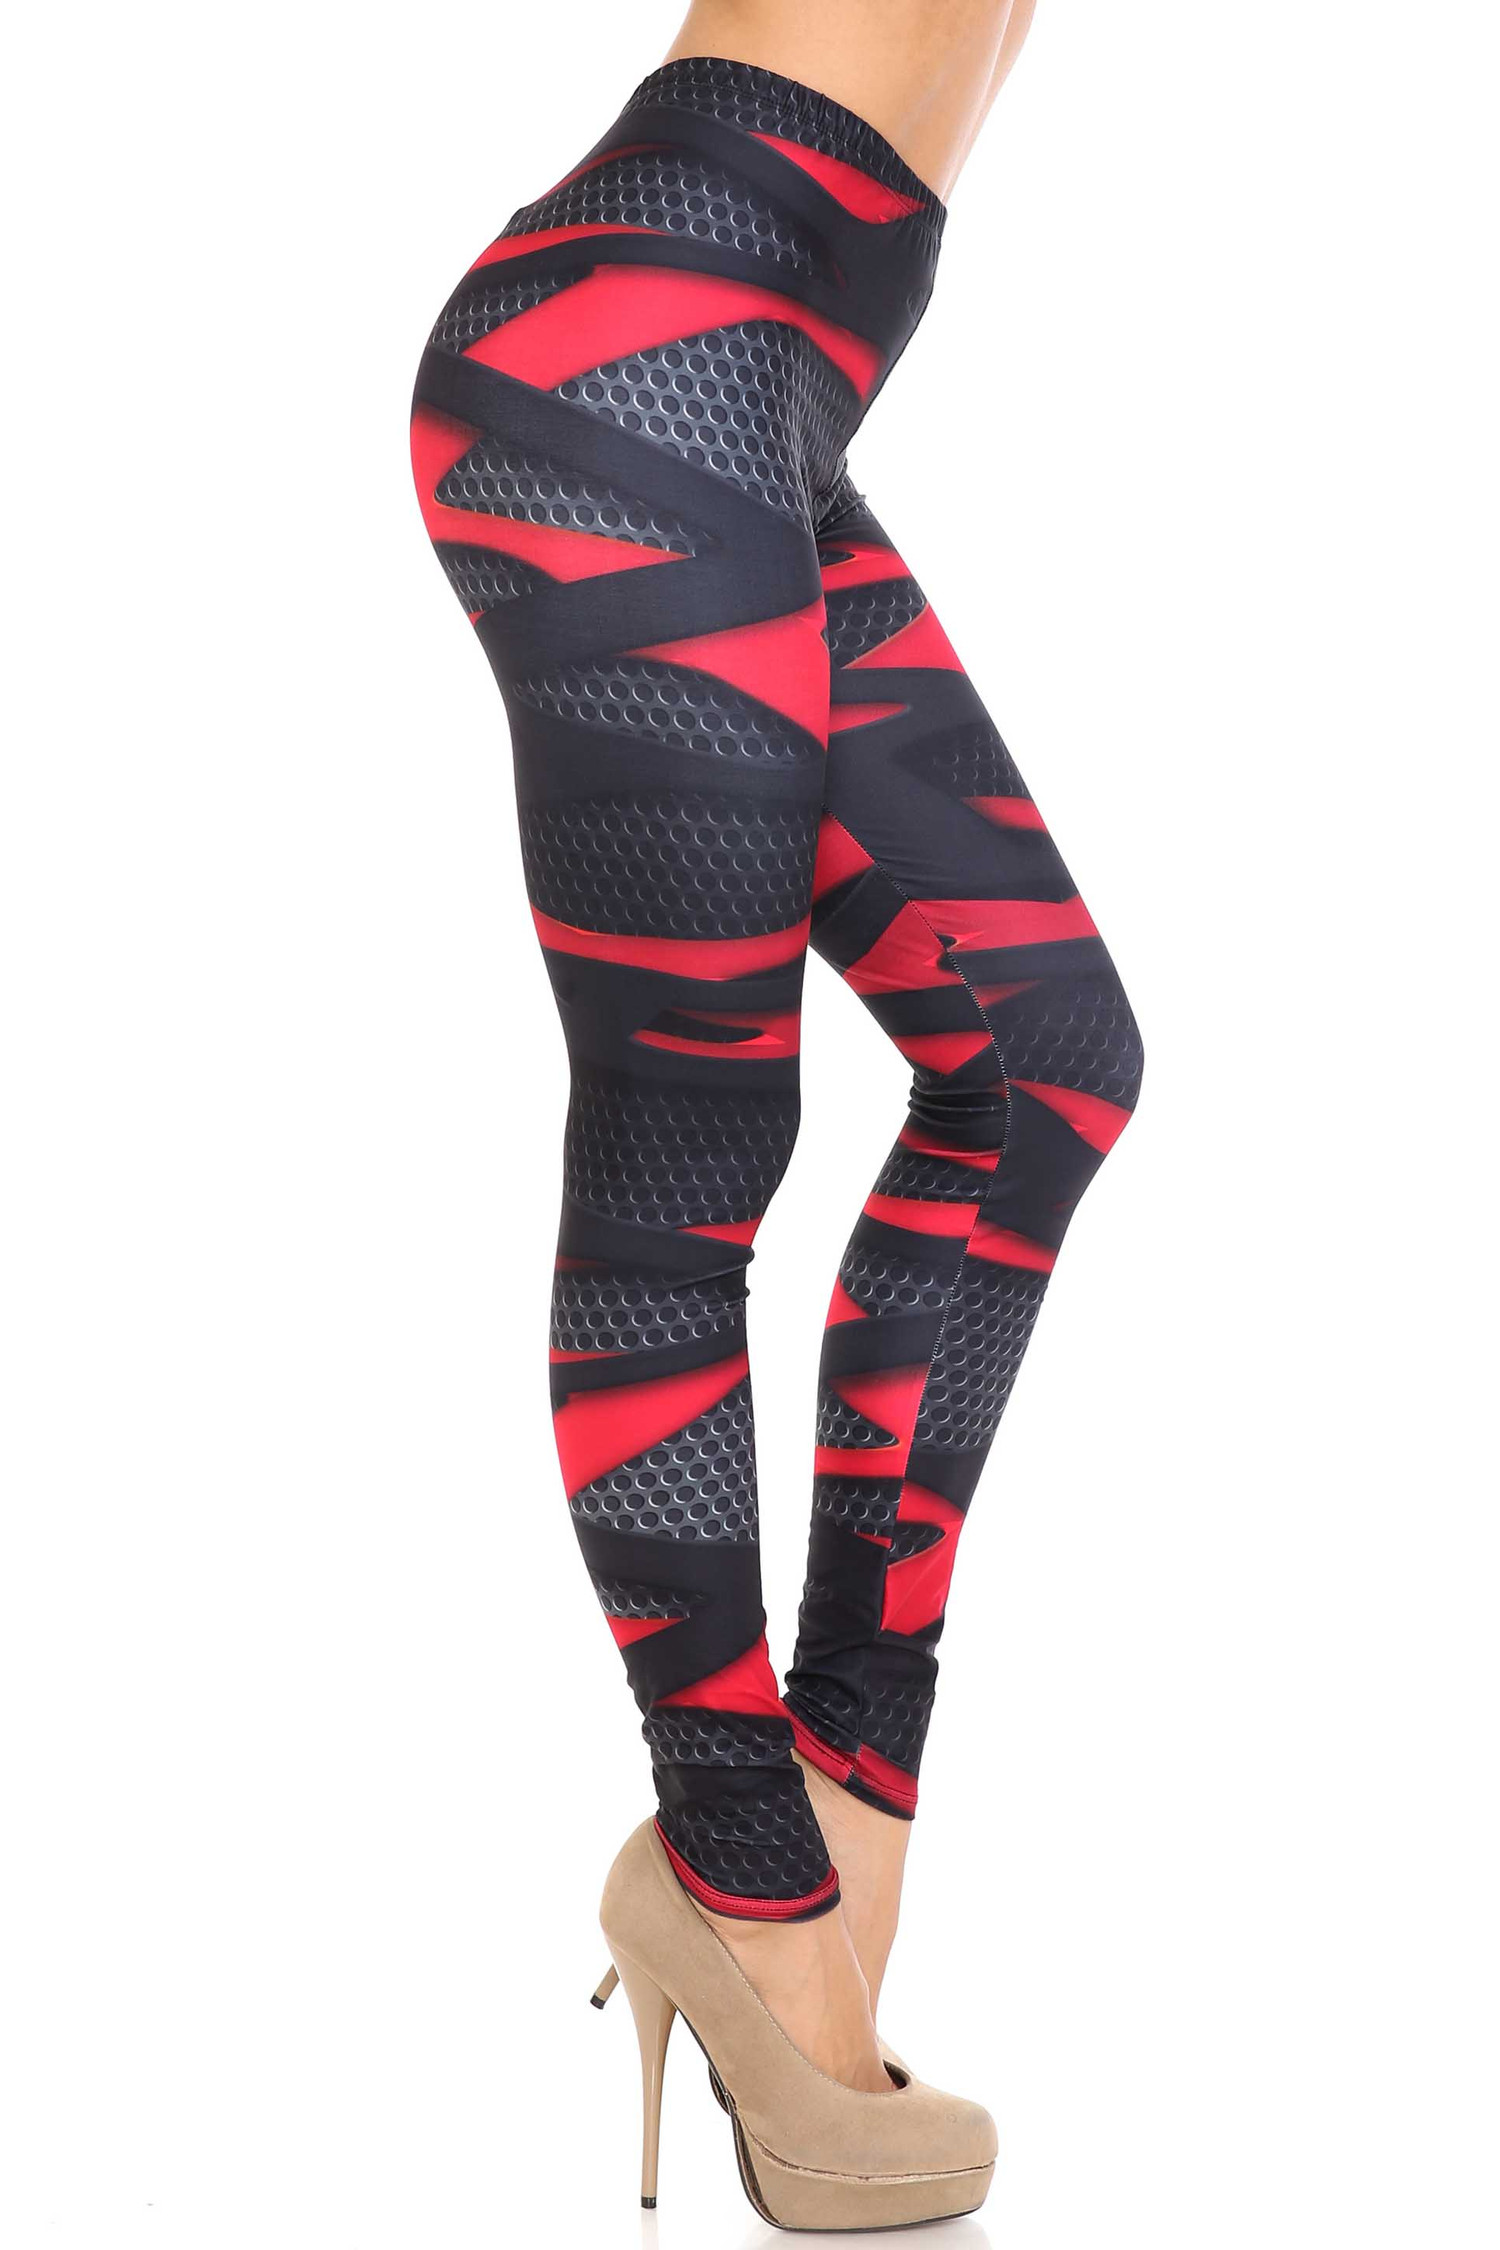 Creamy Soft Cascading 3D Sport Wrap Leggings - USA Fashion™